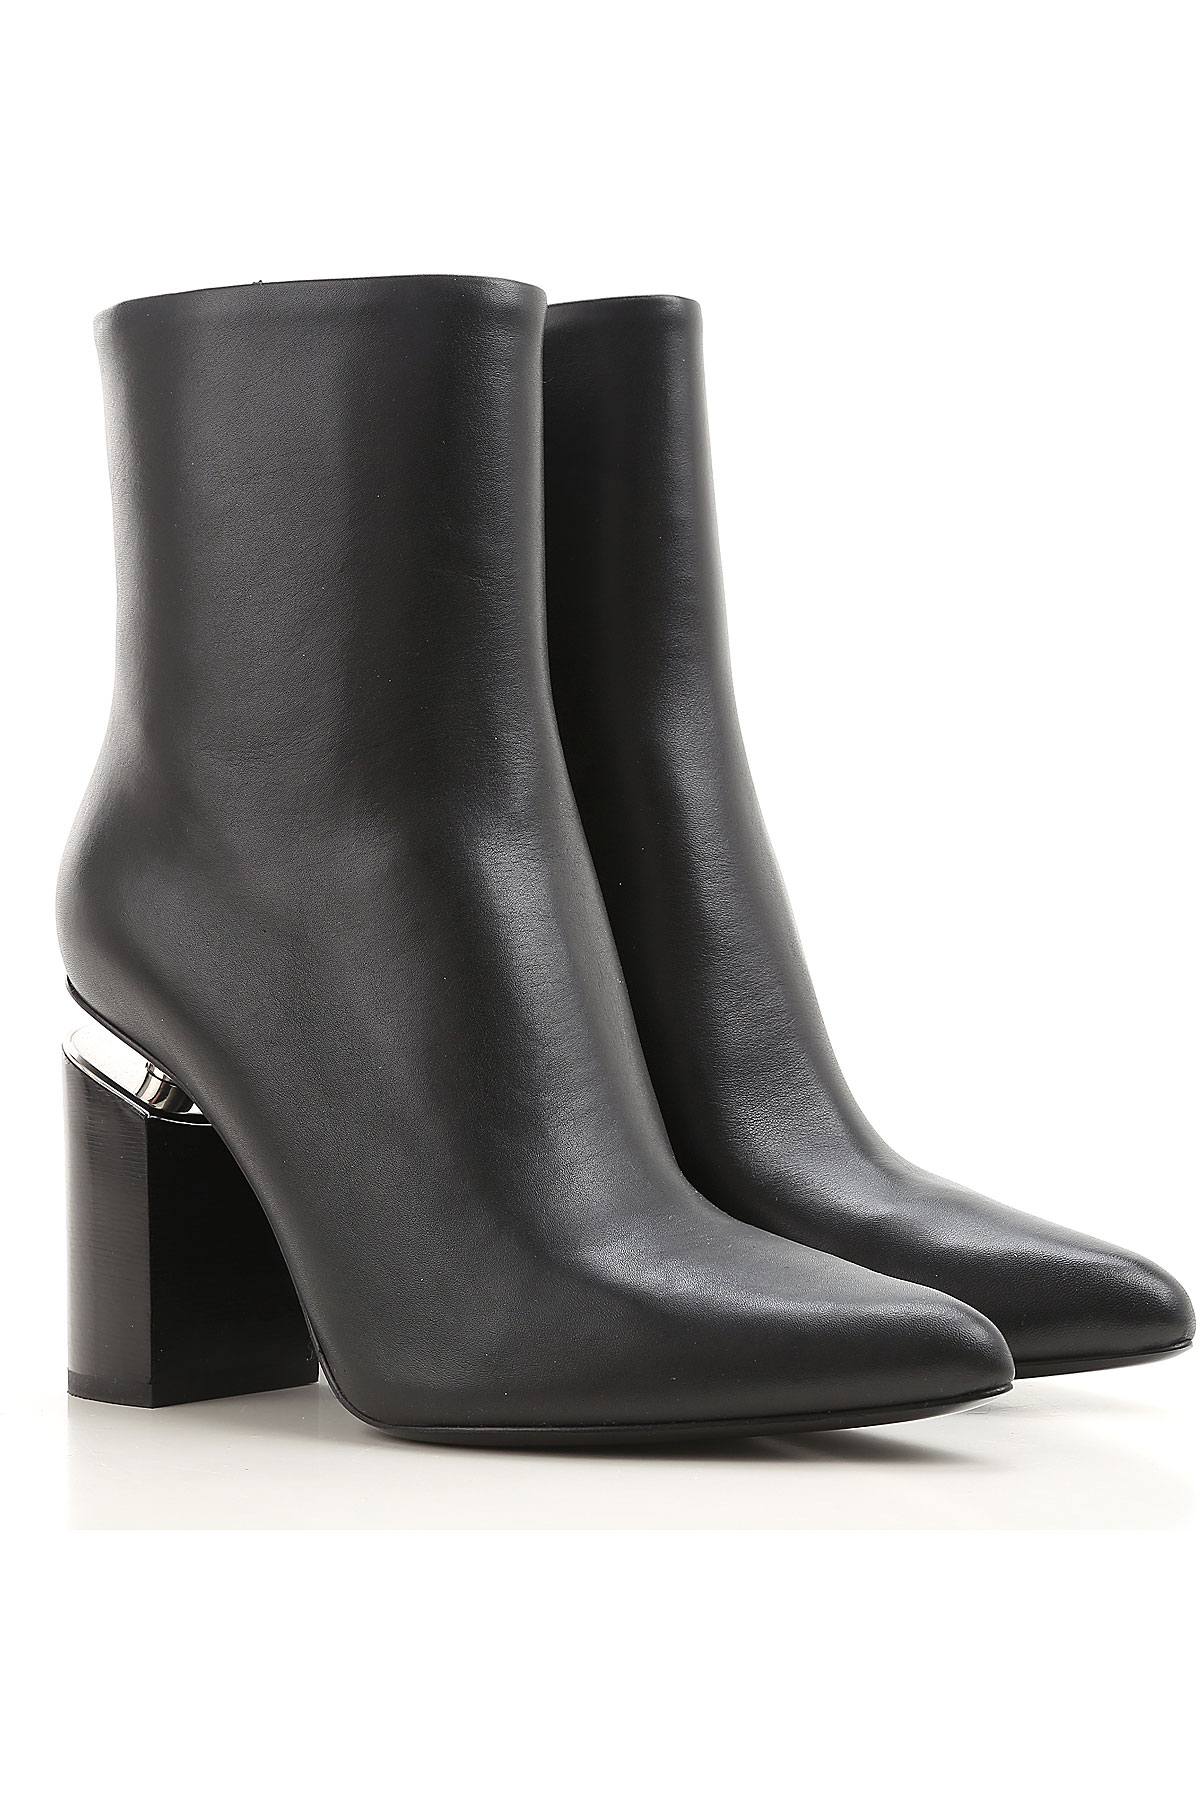 Image of Alexander Wang Womens Shoes, Black, Leather, 2017, 6 7 8 9